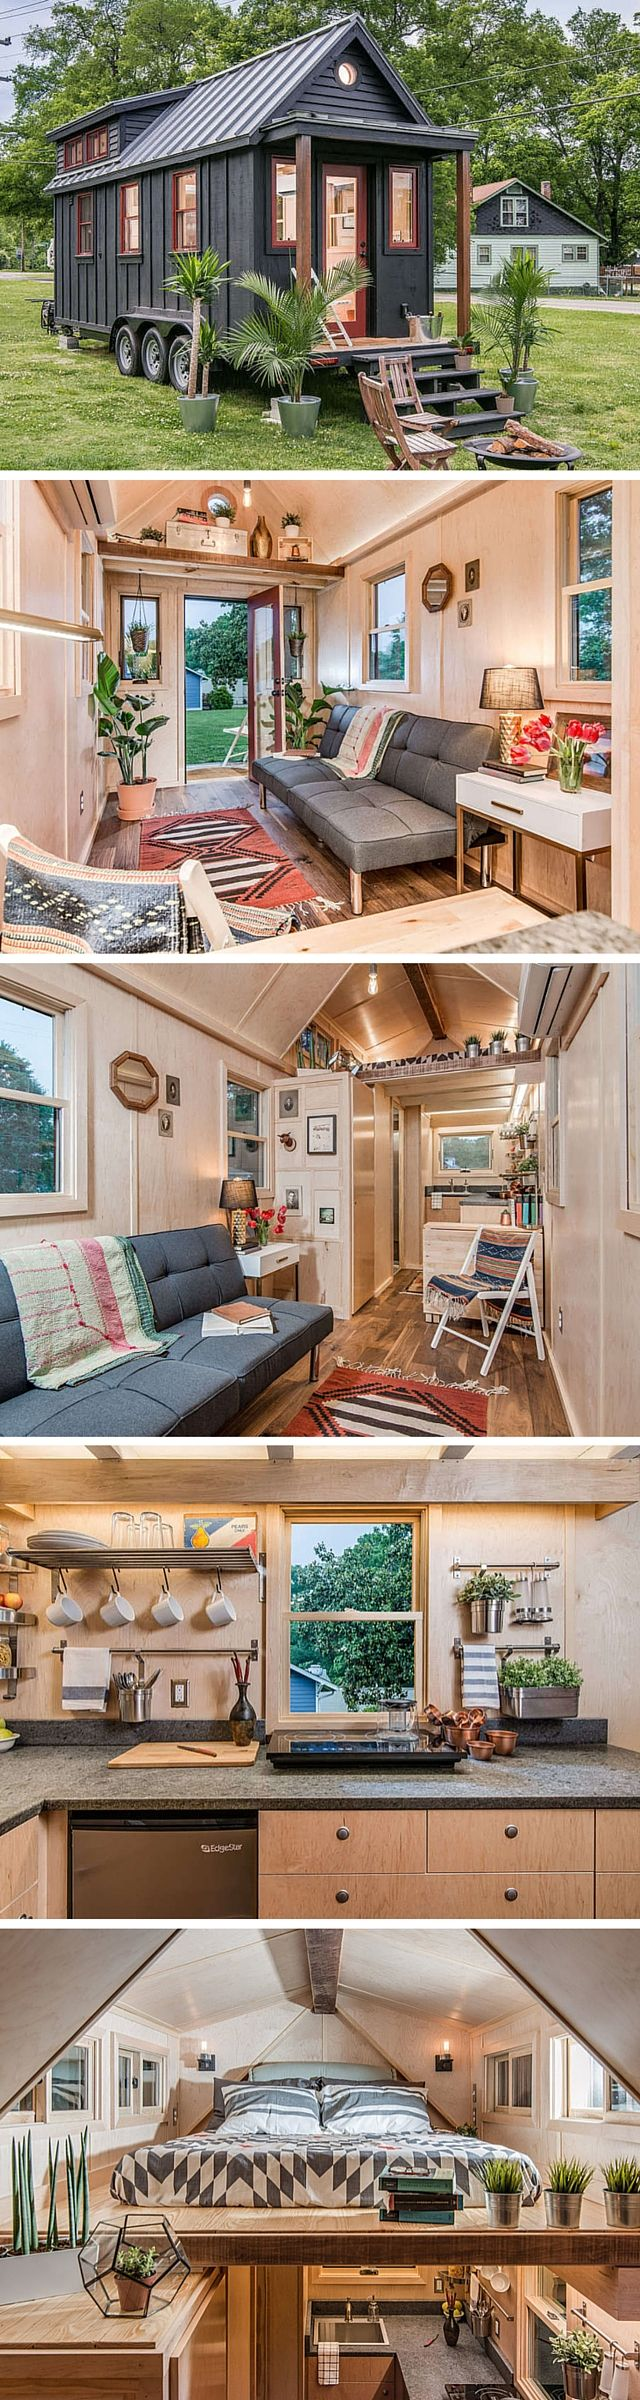 The riverside tiny house by new frontier tiny homes a 246 sq ft home with